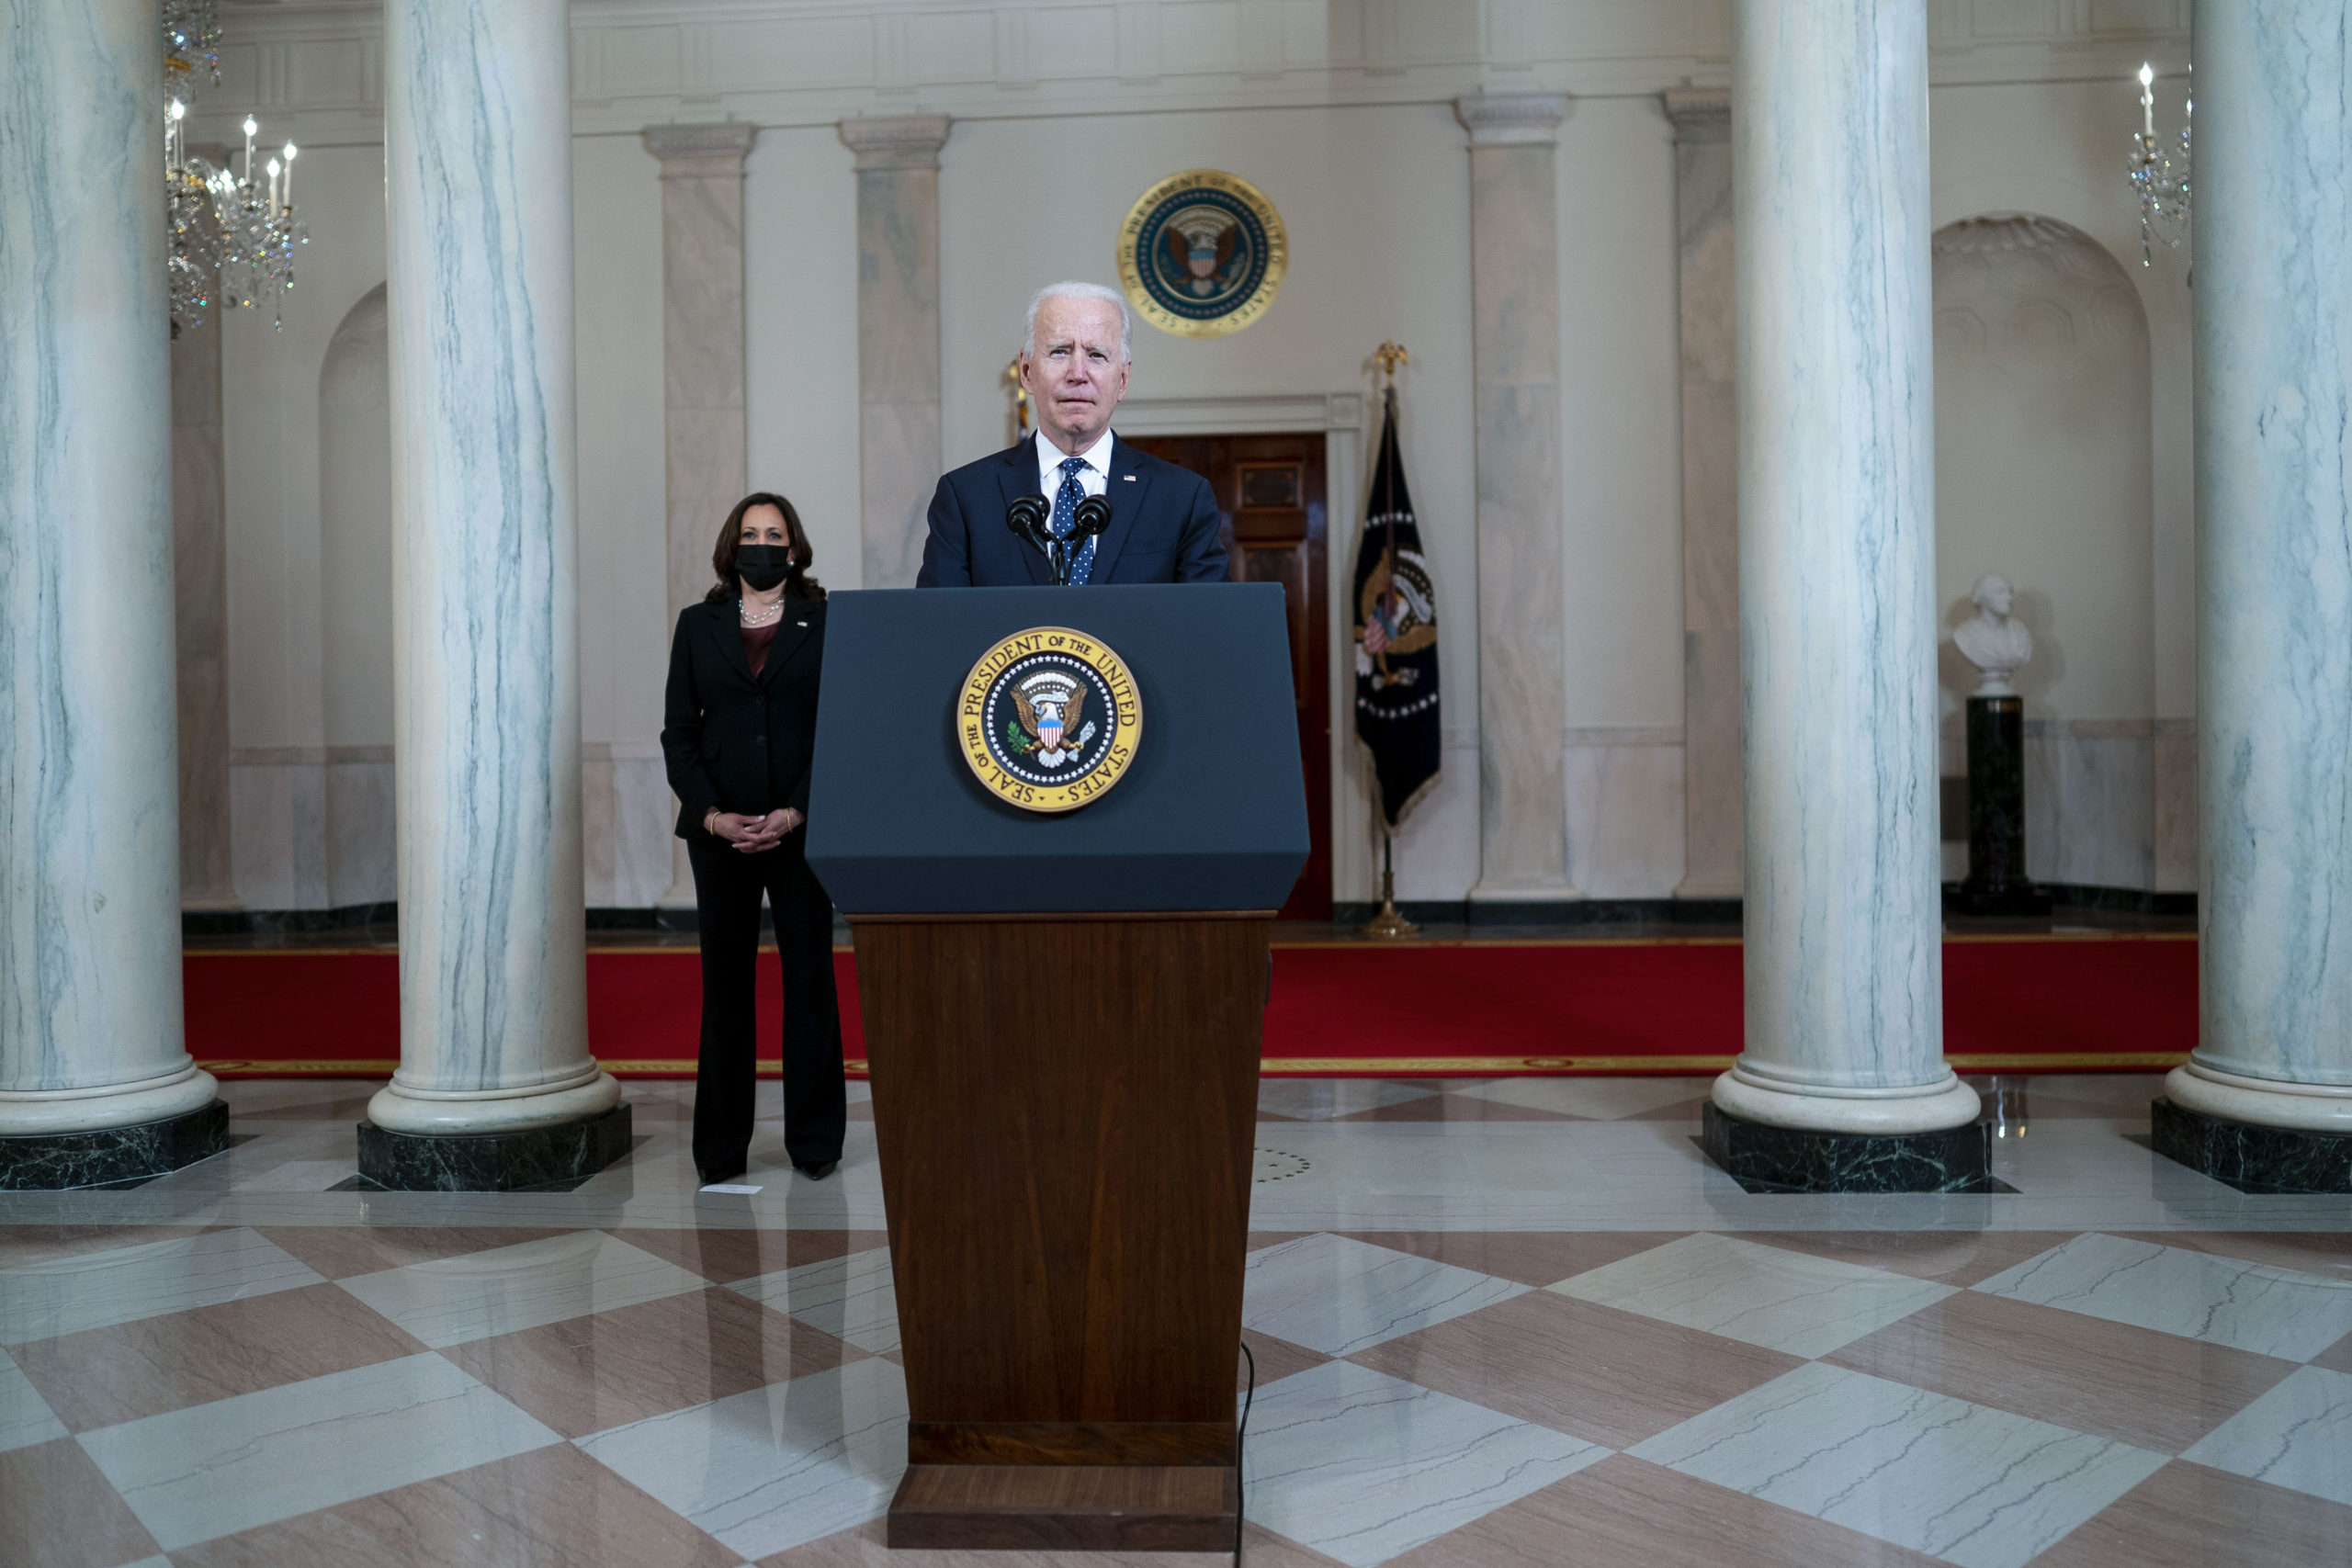 President Joe Biden makes remarks as Vice President Kamala Harris looks on in response to the verdict in the murder trial of former Minneapolis police officer Derek Chauvin on April 20. (Doug Mills/Pool/Getty Images)